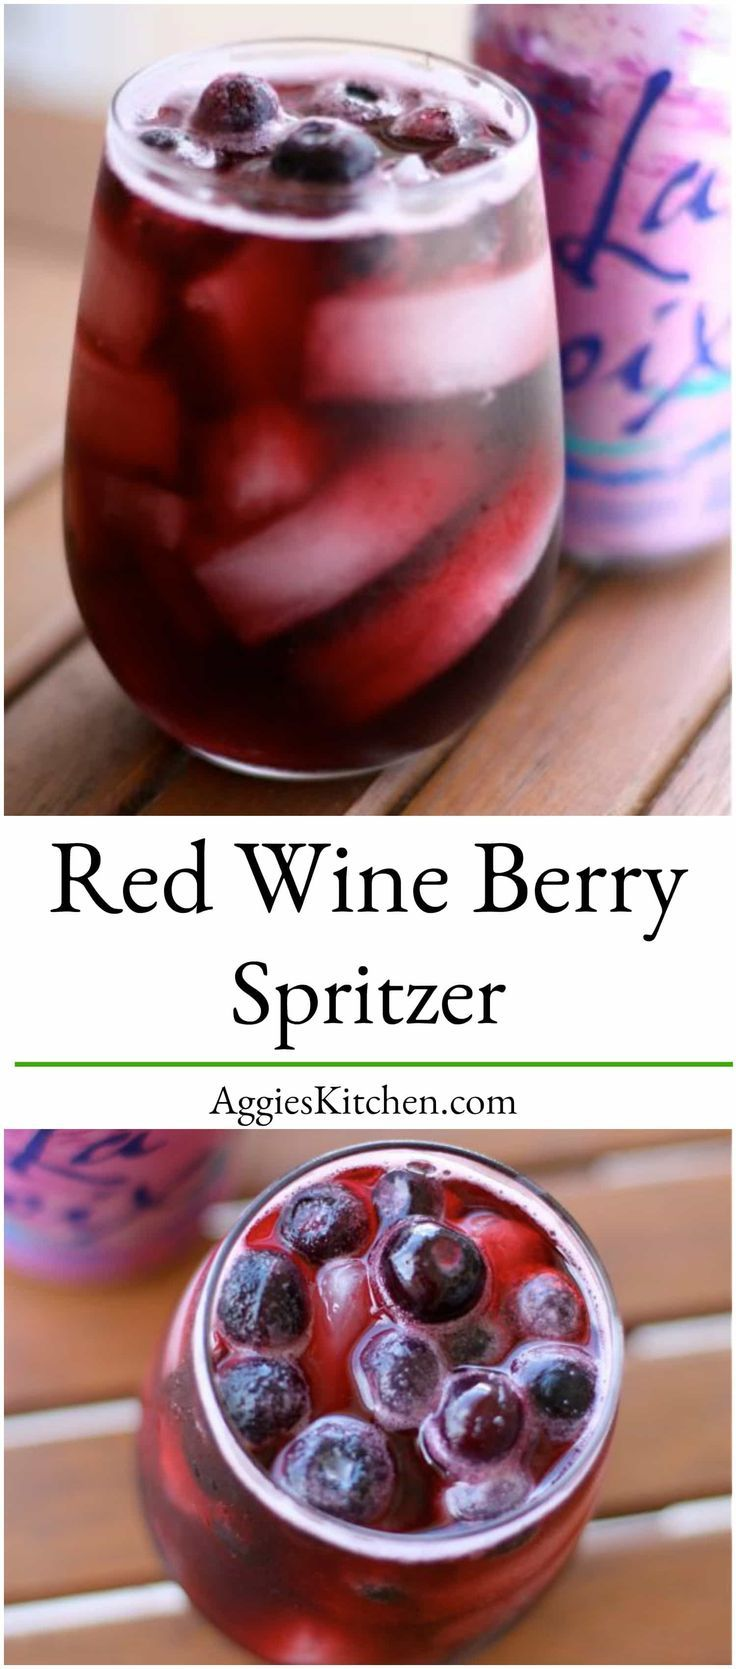 Enjoy this refreshing and easy Red Wine Berry Spritzer based cocktail for anyone looking to cut back on calories. Perfect to sip poolside during the summer! via @aggieskitchen